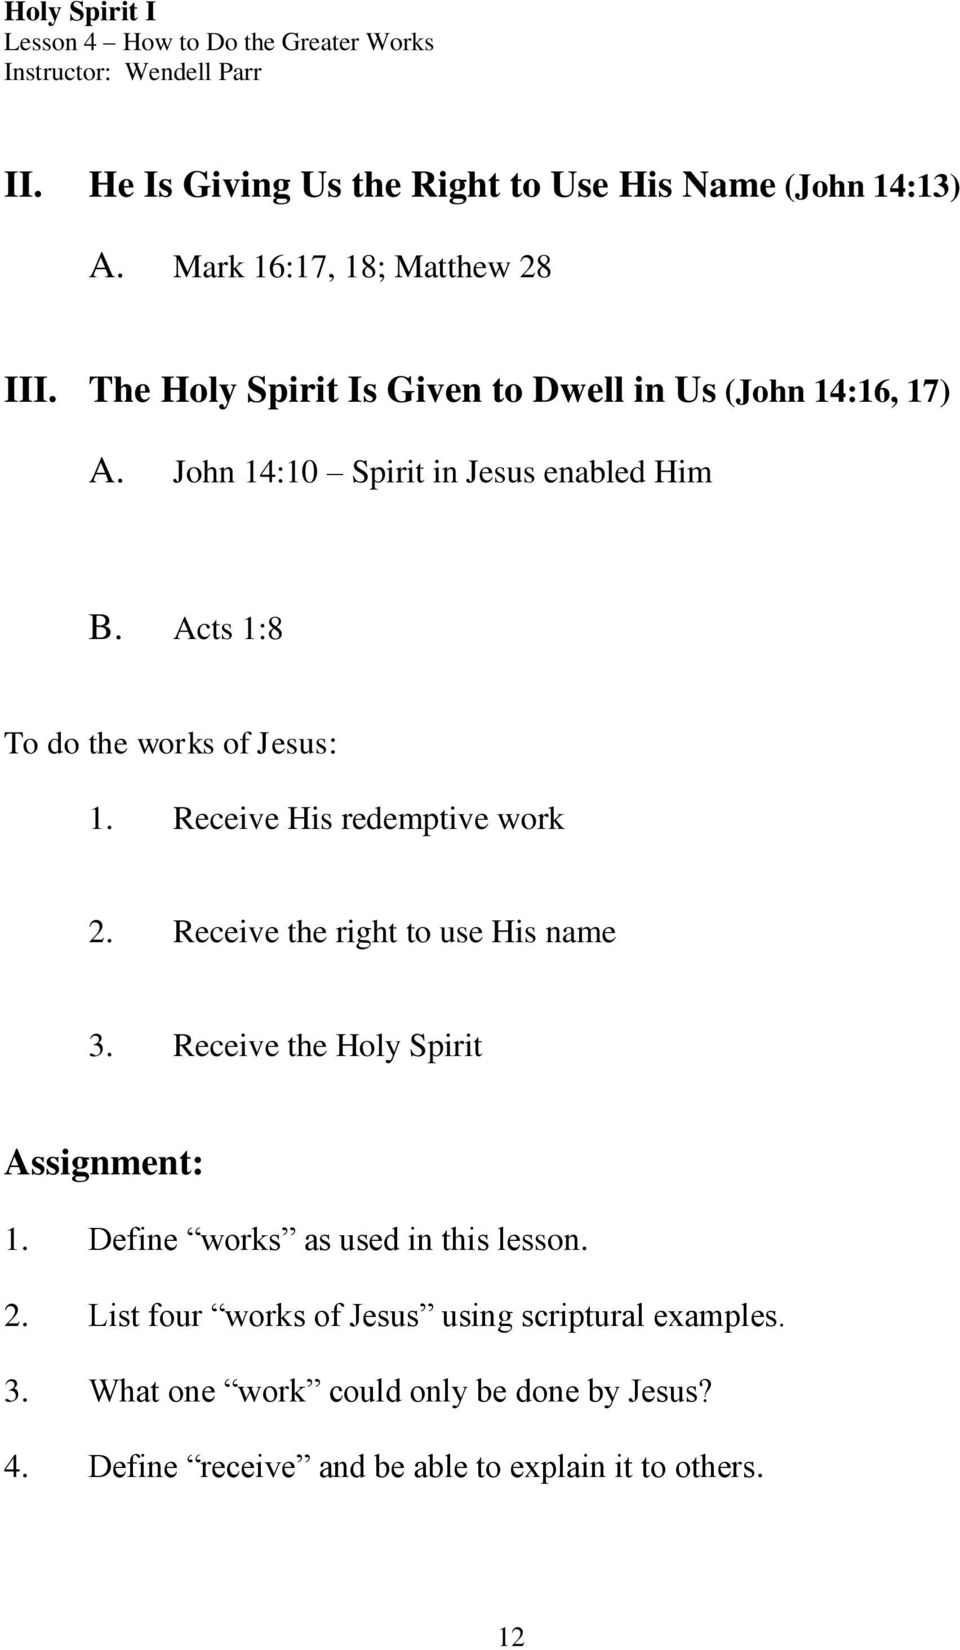 Receive His redemptive work 2. Receive the right to use His name 3. Receive the Holy Spirit Assignment: 1. Define works as used in this lesson.